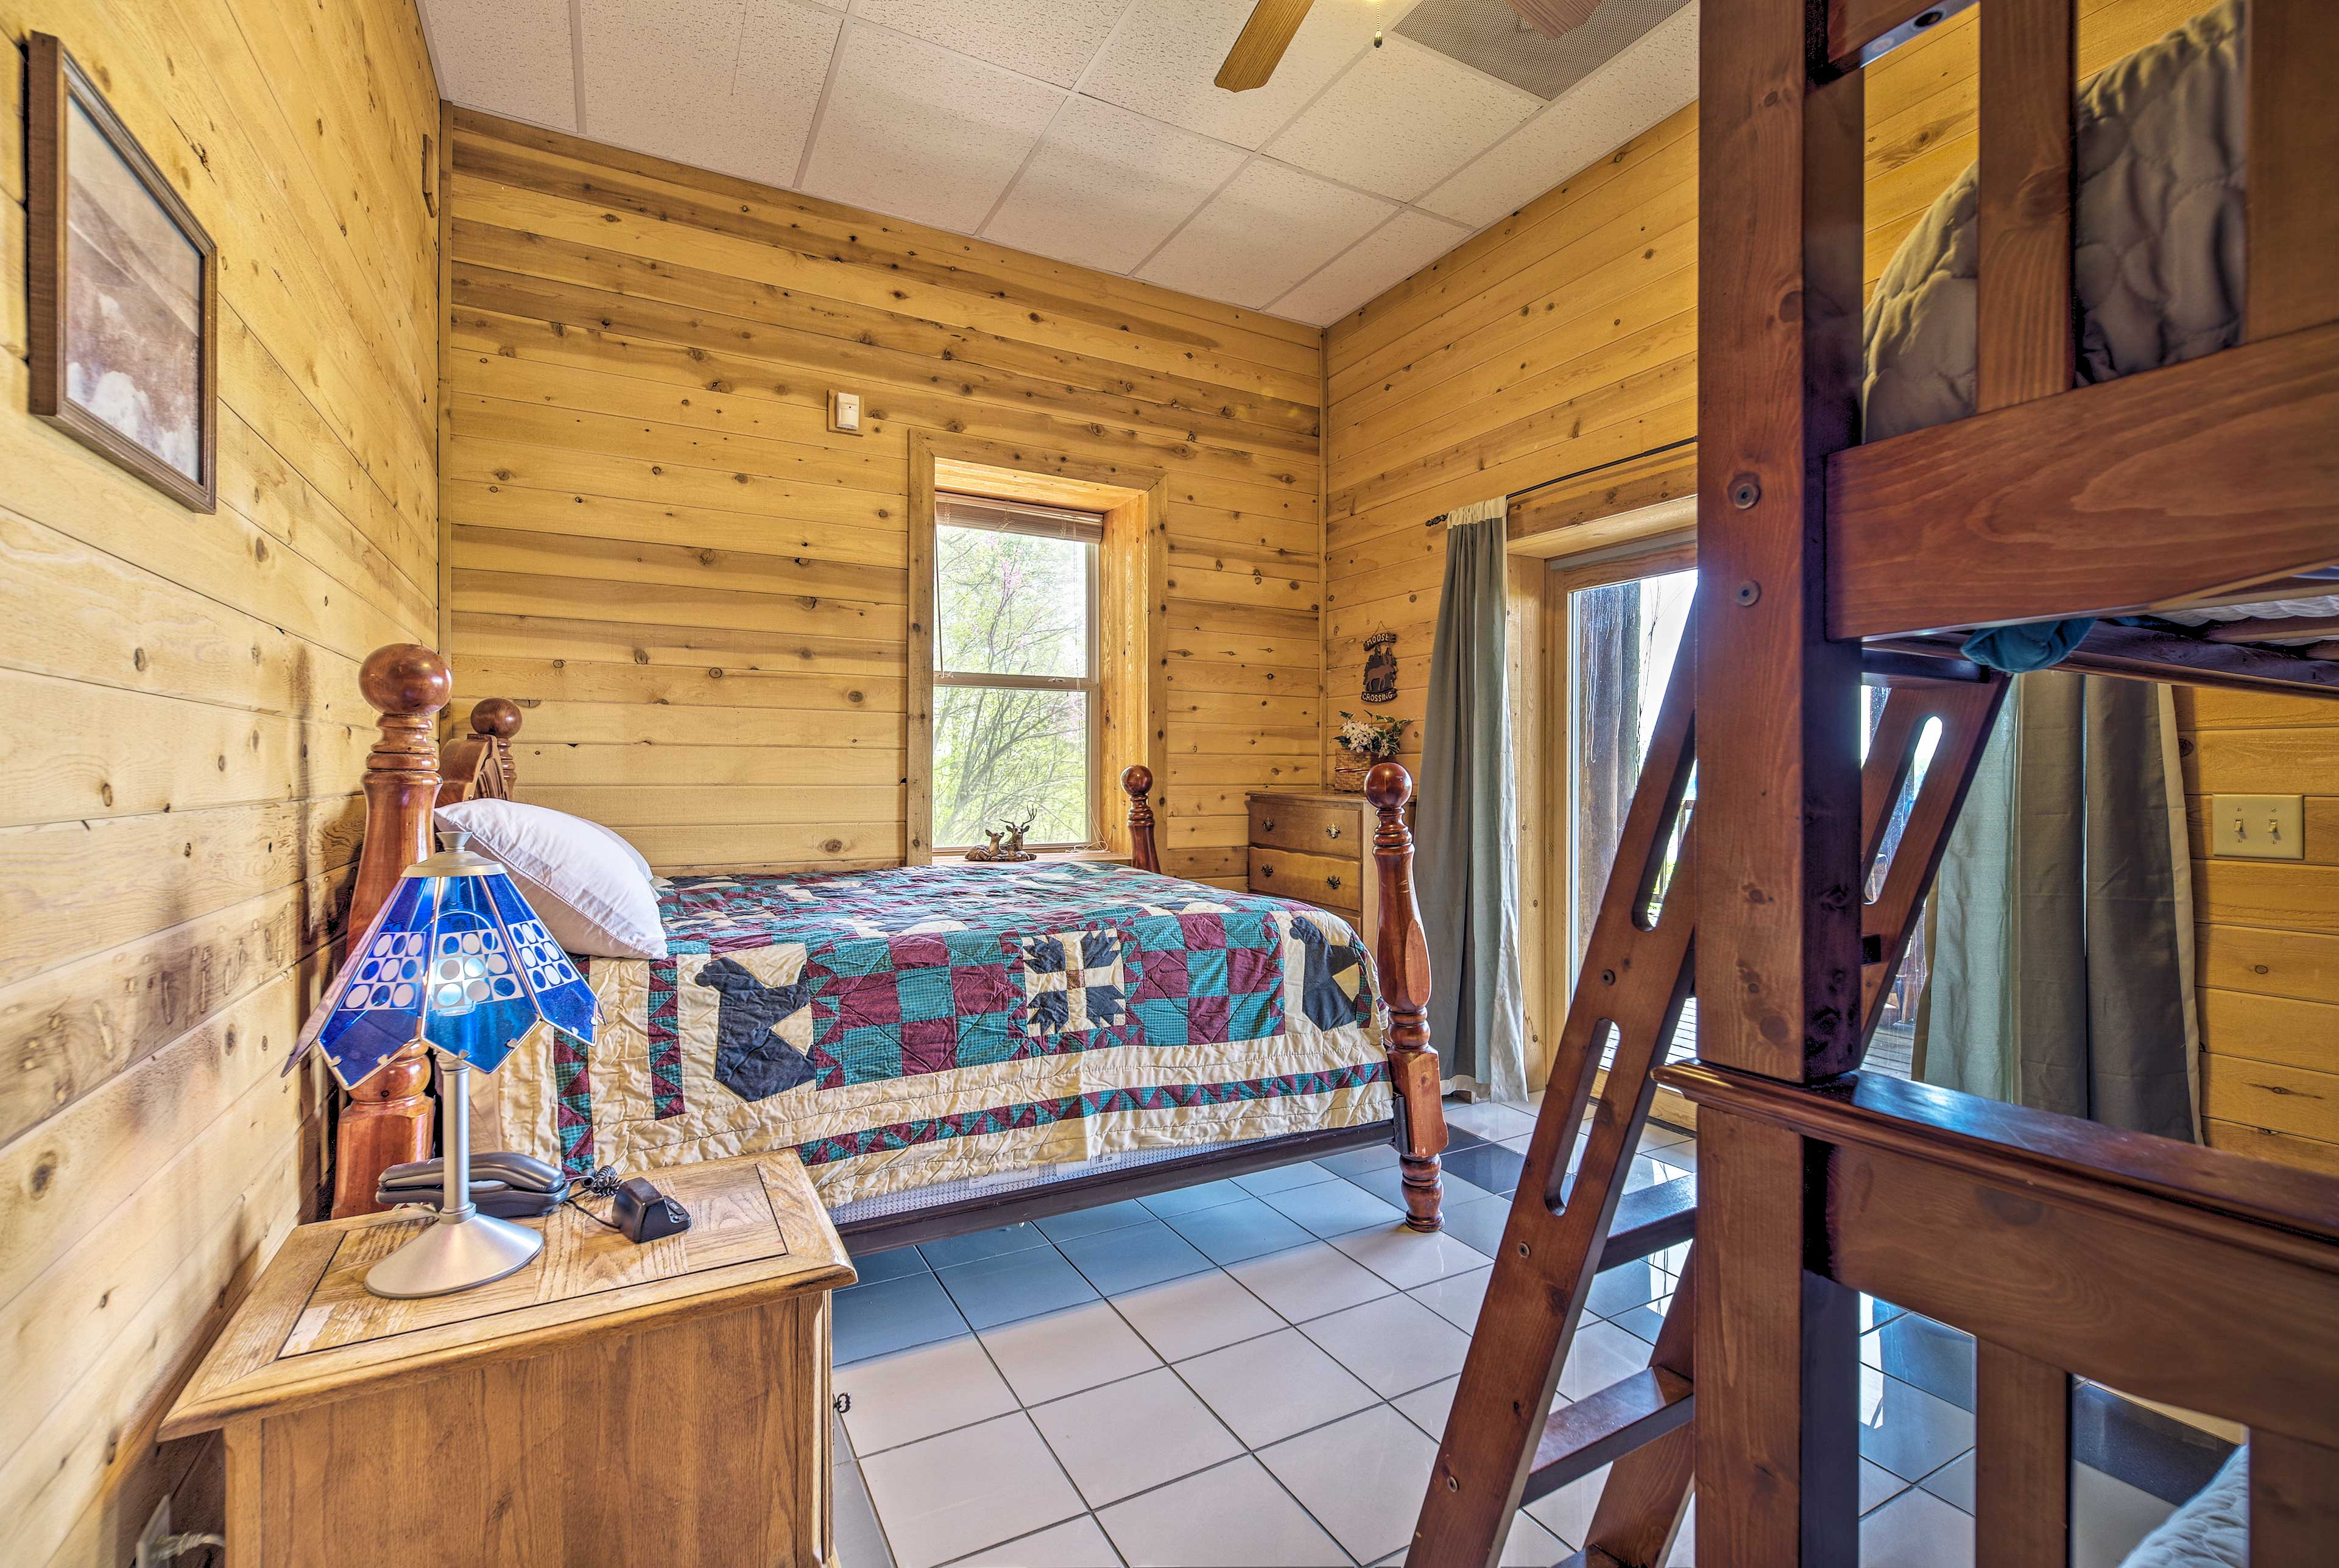 Hop in the queen bed or twin bunk bed in this room.